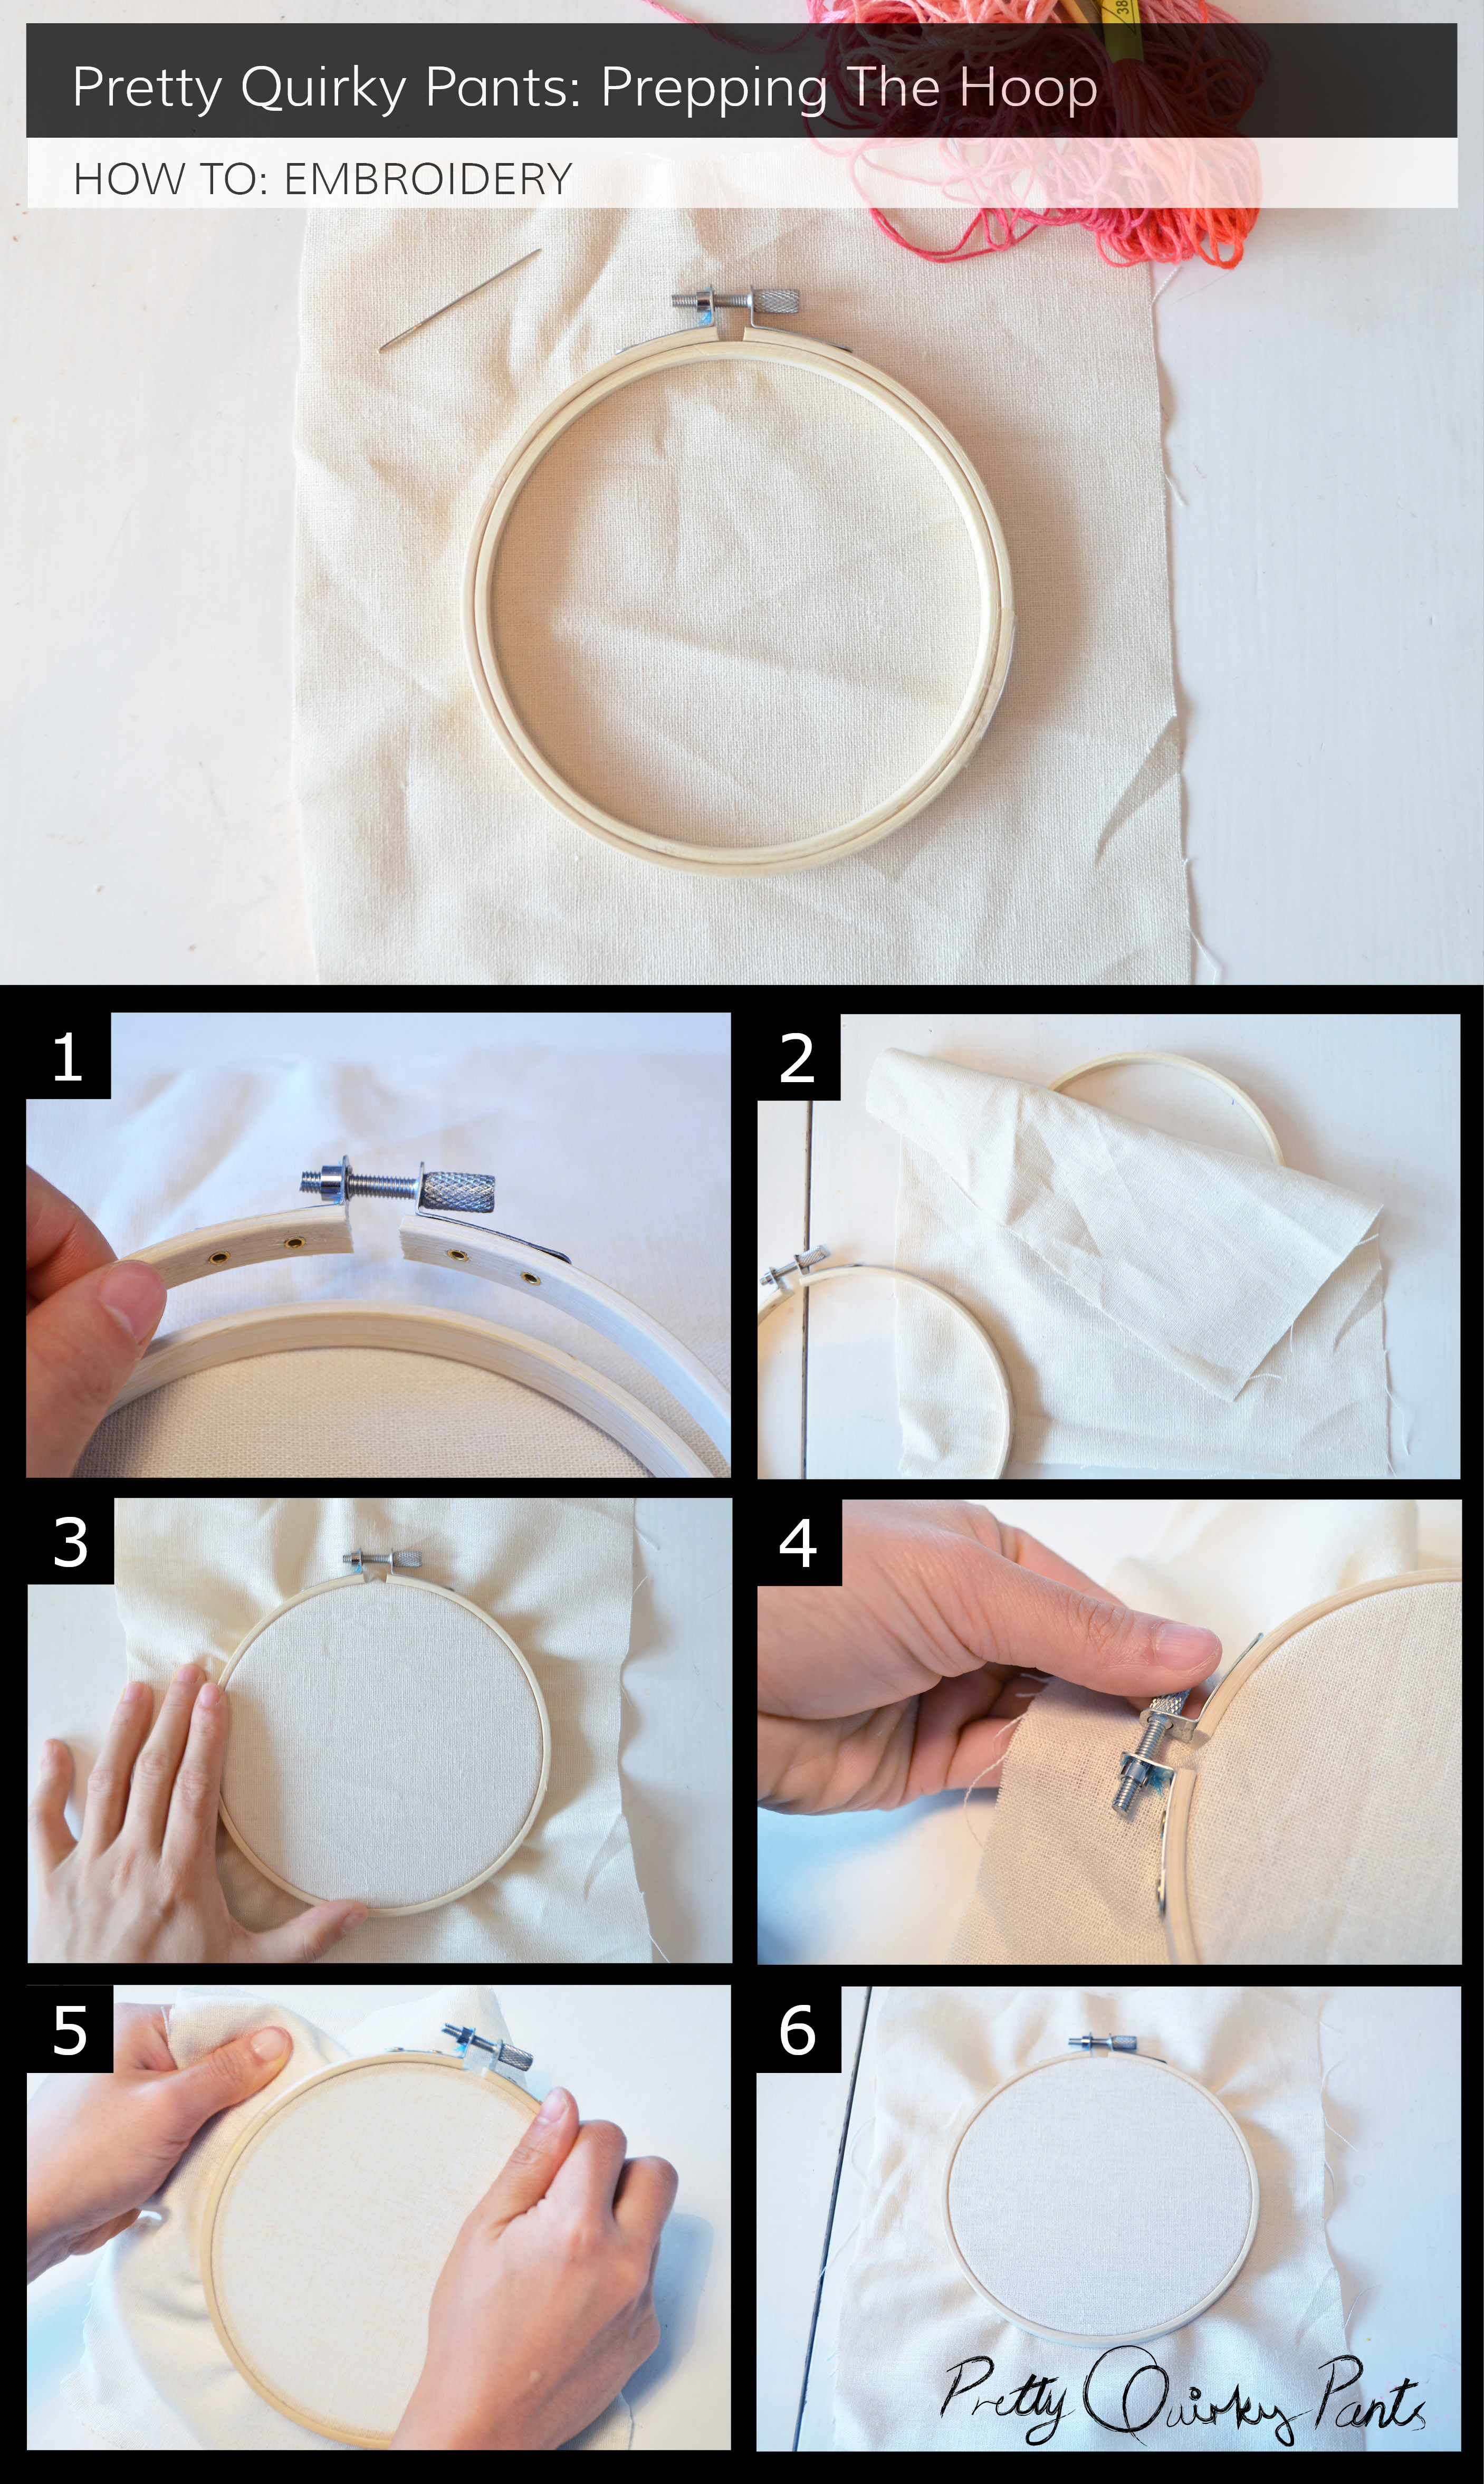 instruction-layout-how-to-embroidery-prepping-hoop